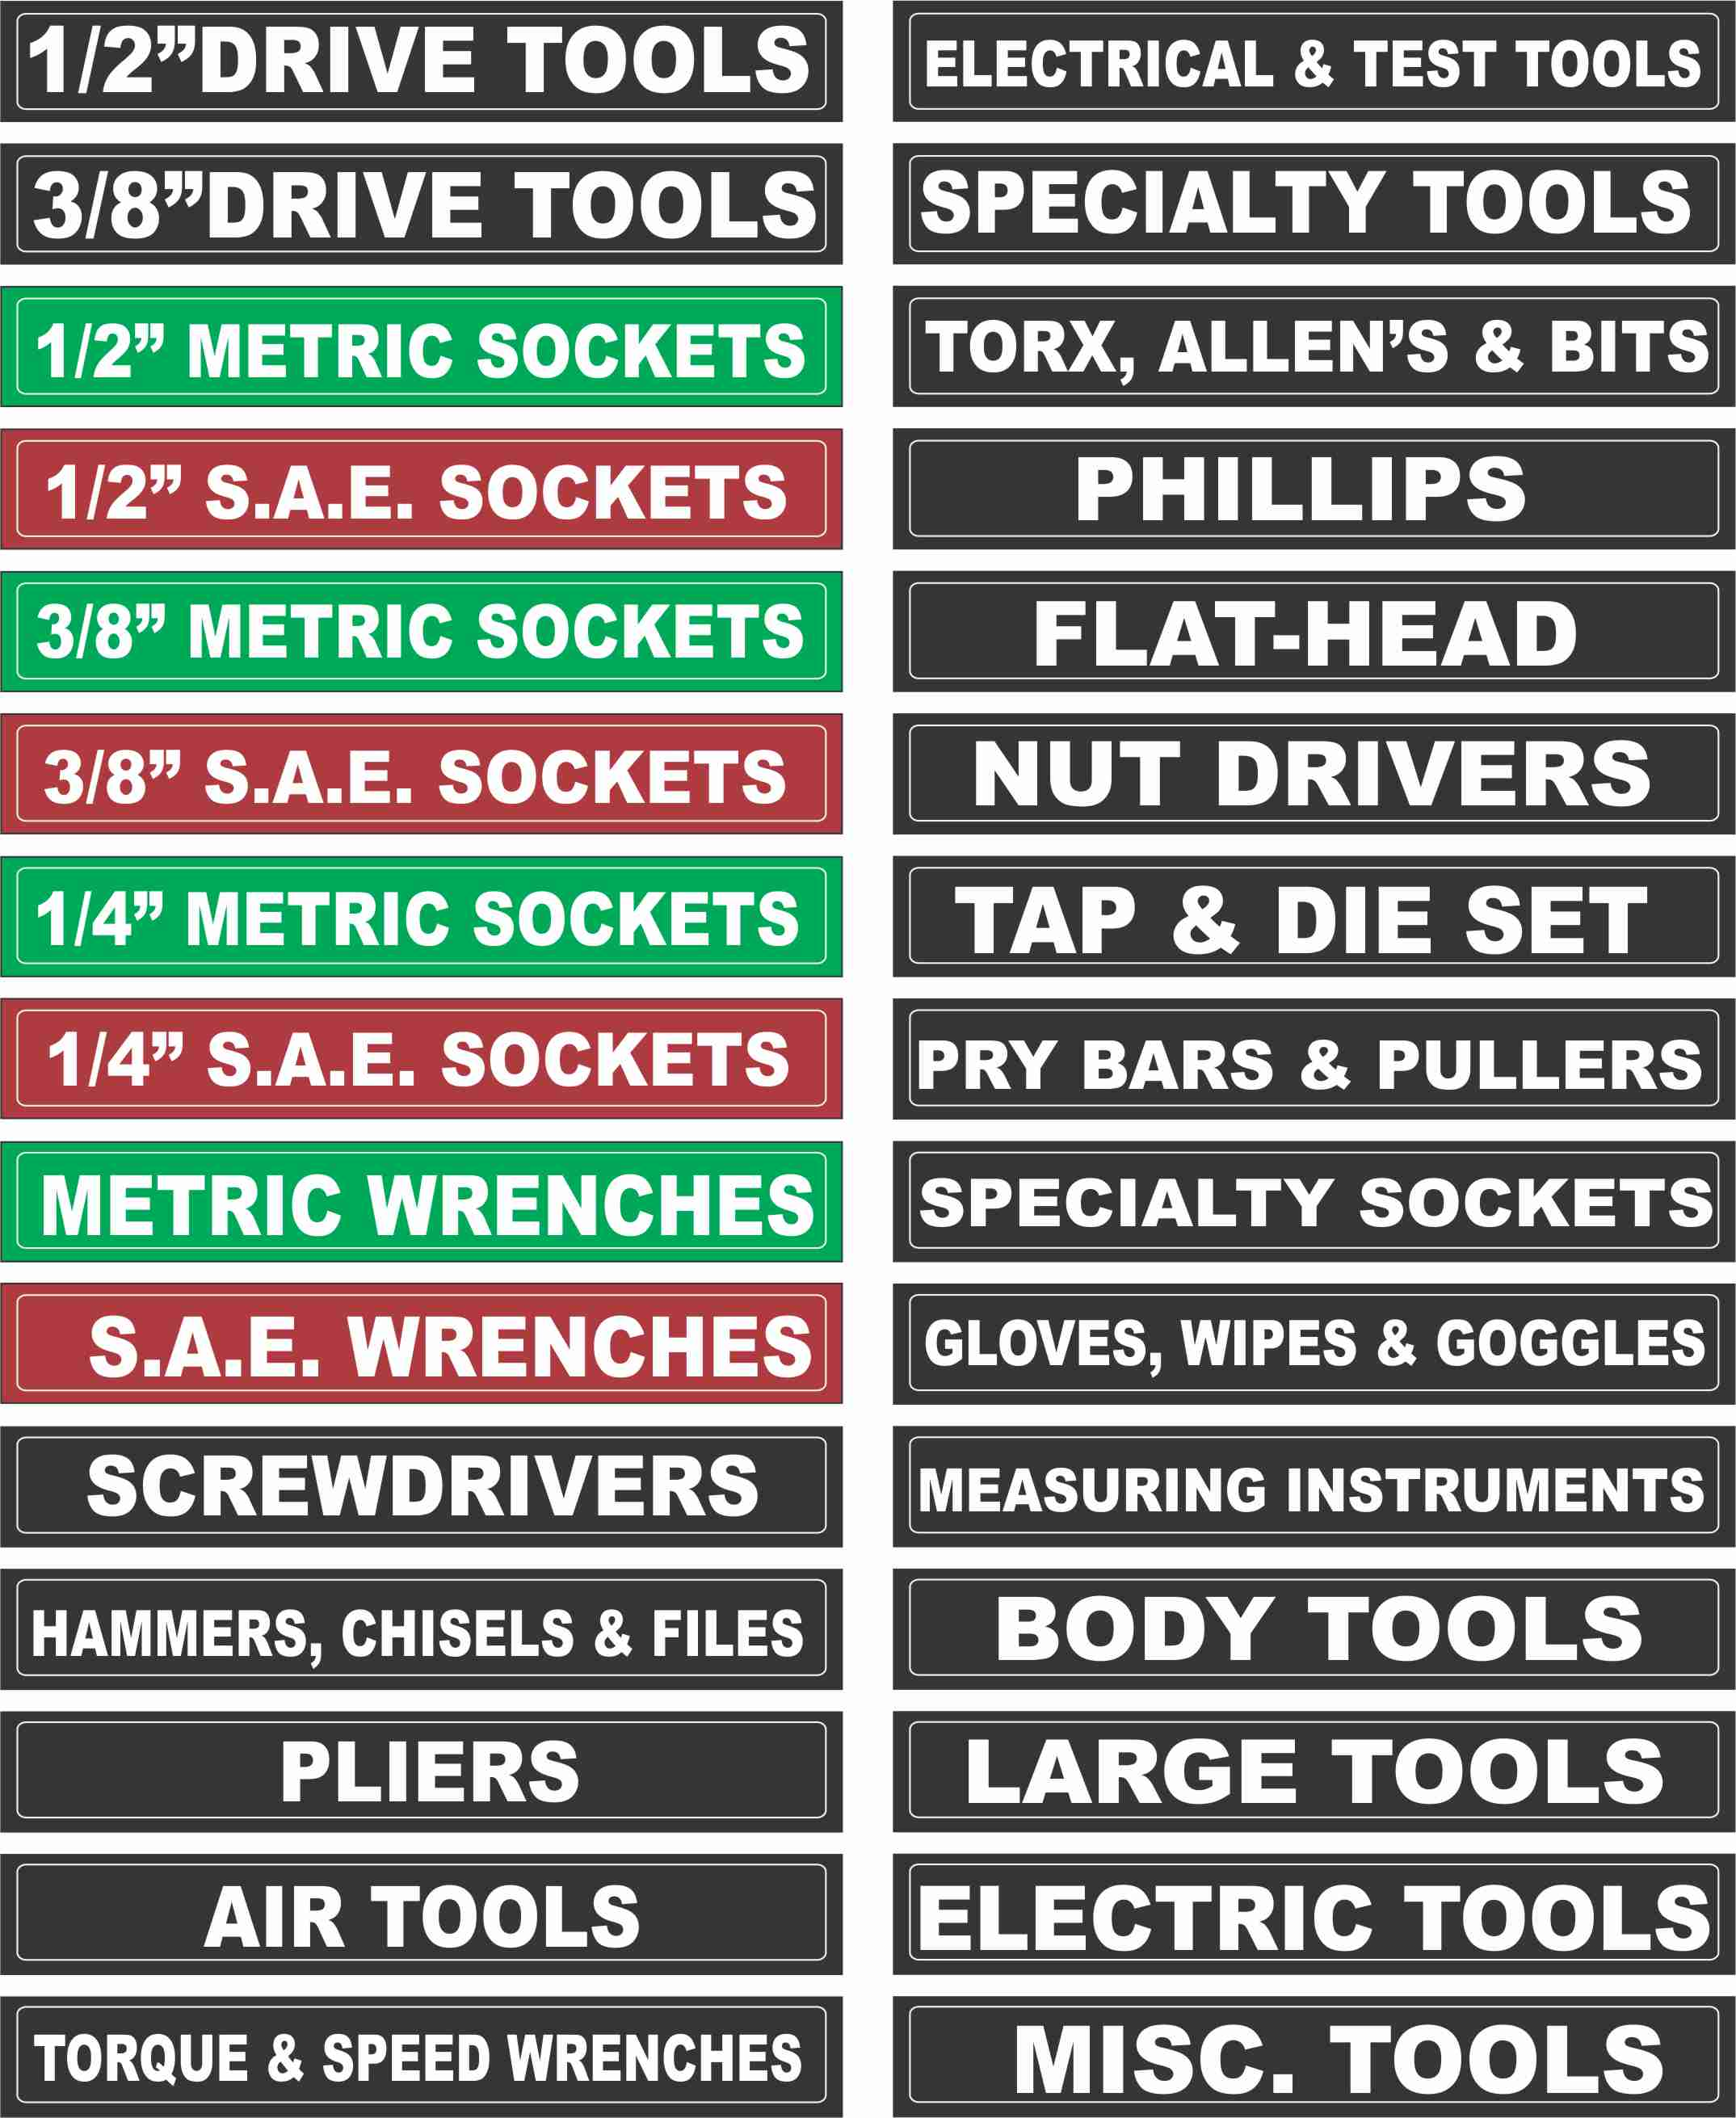 Magnetic Tool Chest Labels Set of 30